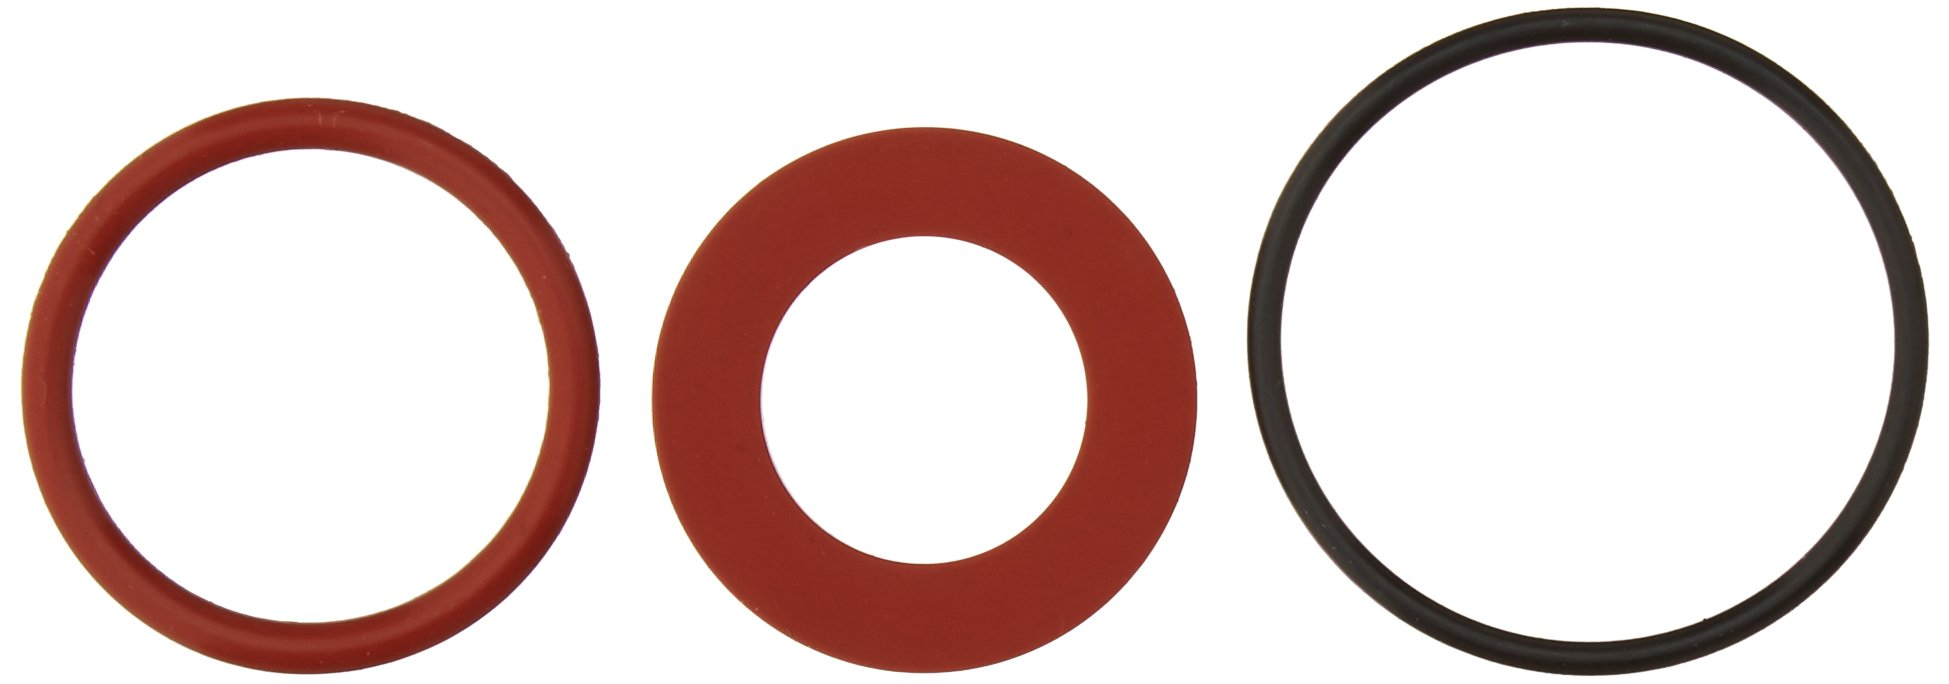 Febco 0887706 1/2'' and 3/4'' Rubber Repair Kit